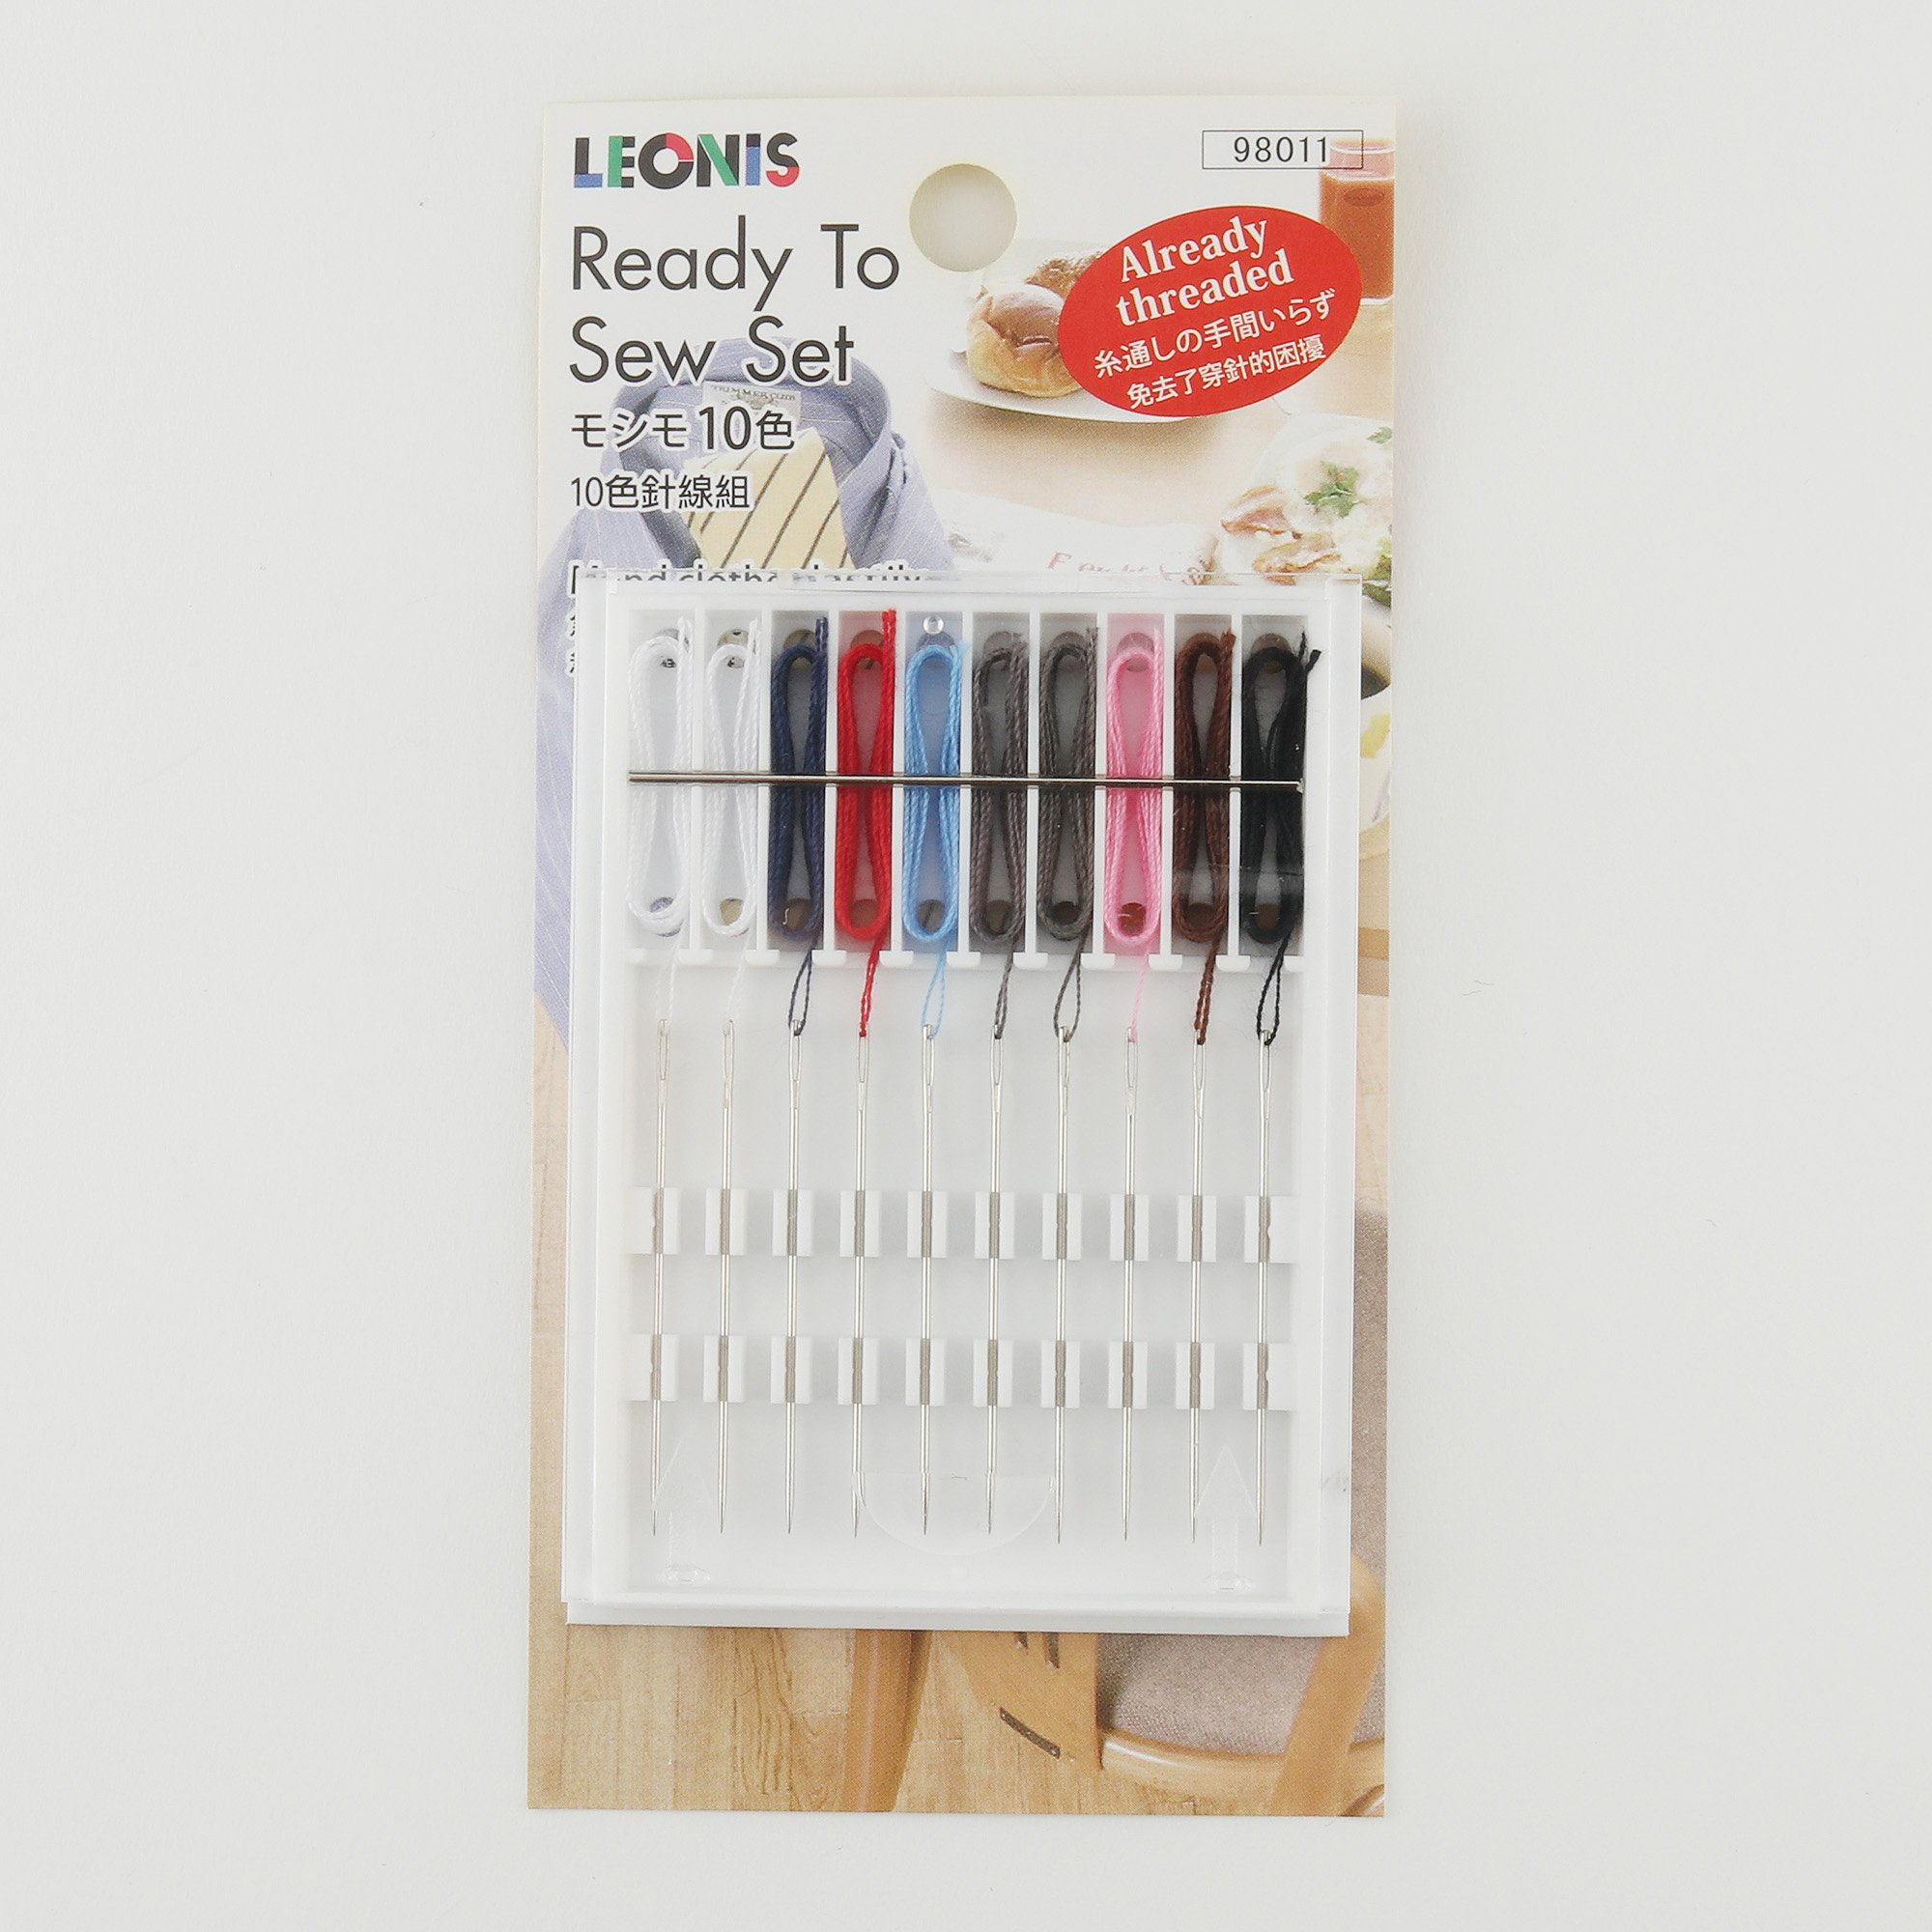 10 Assorted Ready-To-Sew Needles